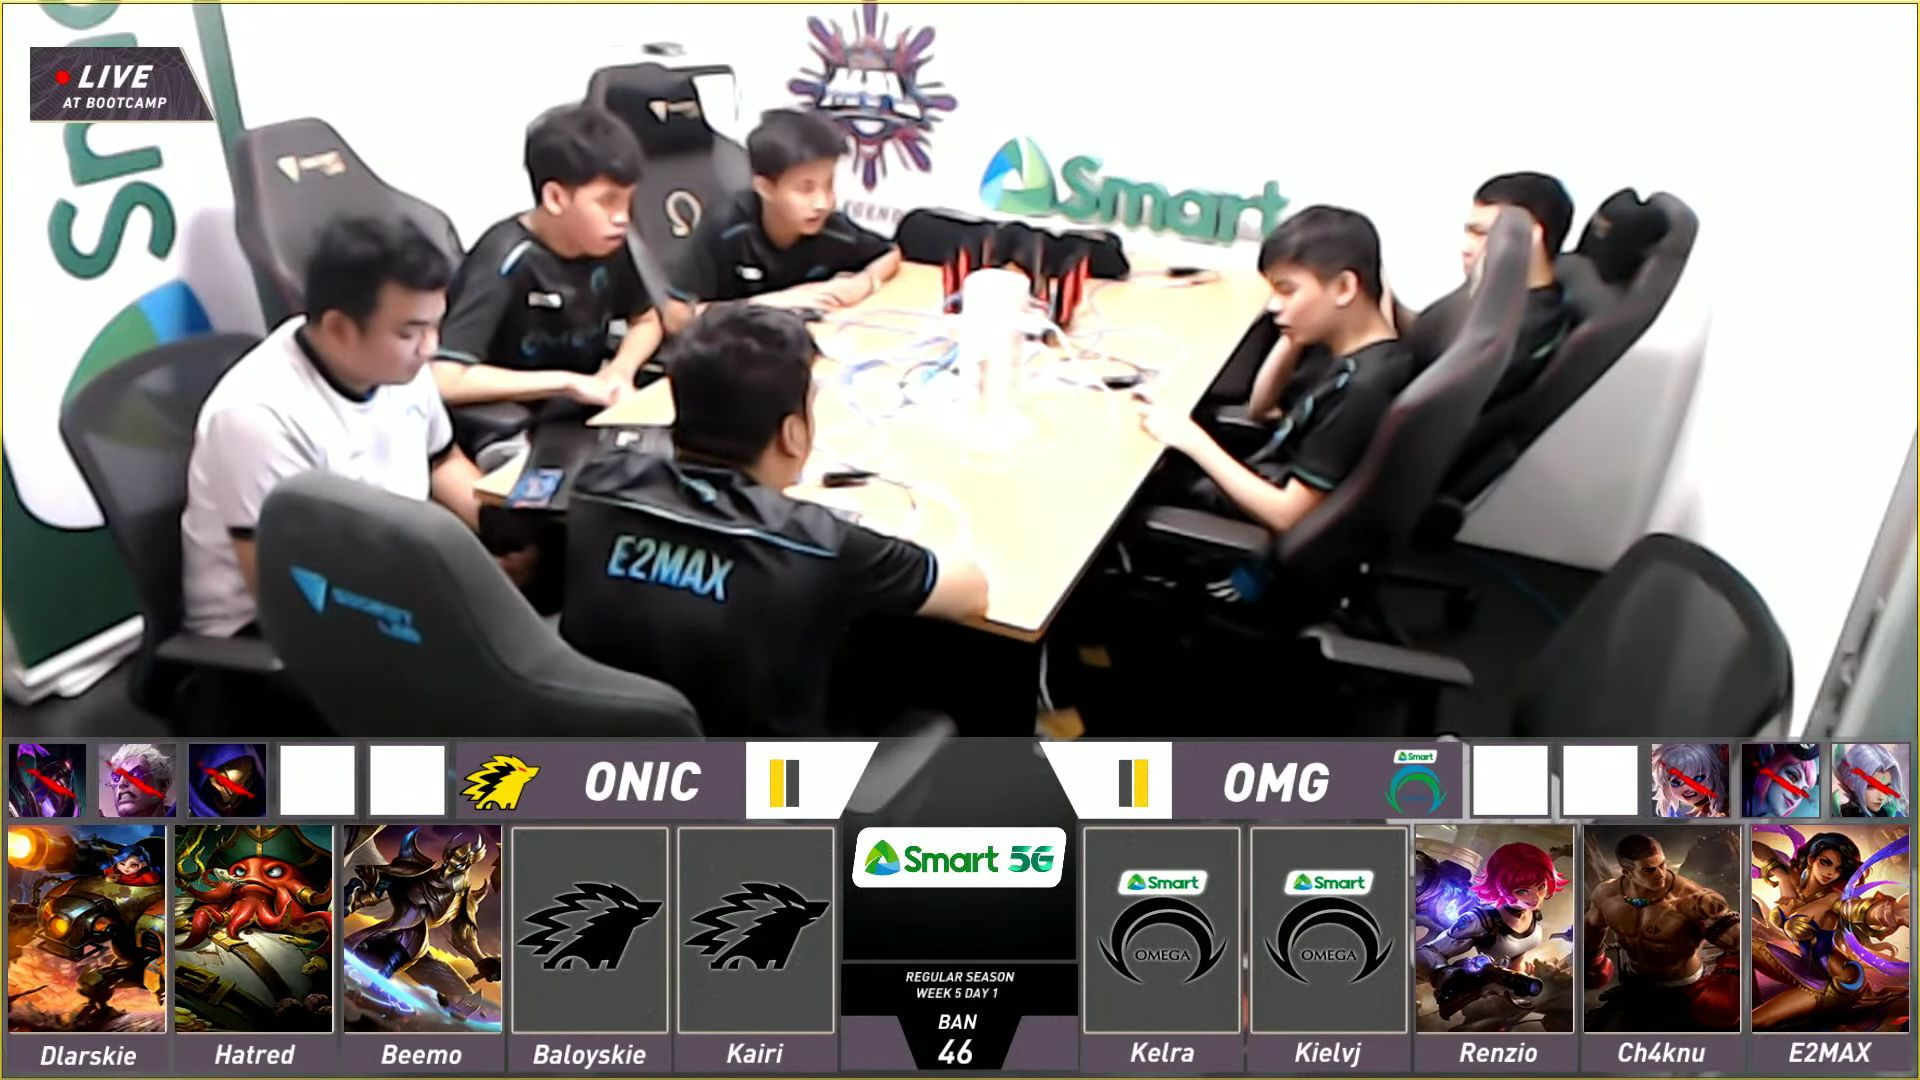 MPL-PH-8-ONIC-def-Omega-OMG-shows-Beatrix-last-pick-of-first-phase SMART Omega rues Moonton's decision to do redraft during ONIC clash ESports Mobile Legends MPL-PH News  - philippine sports news